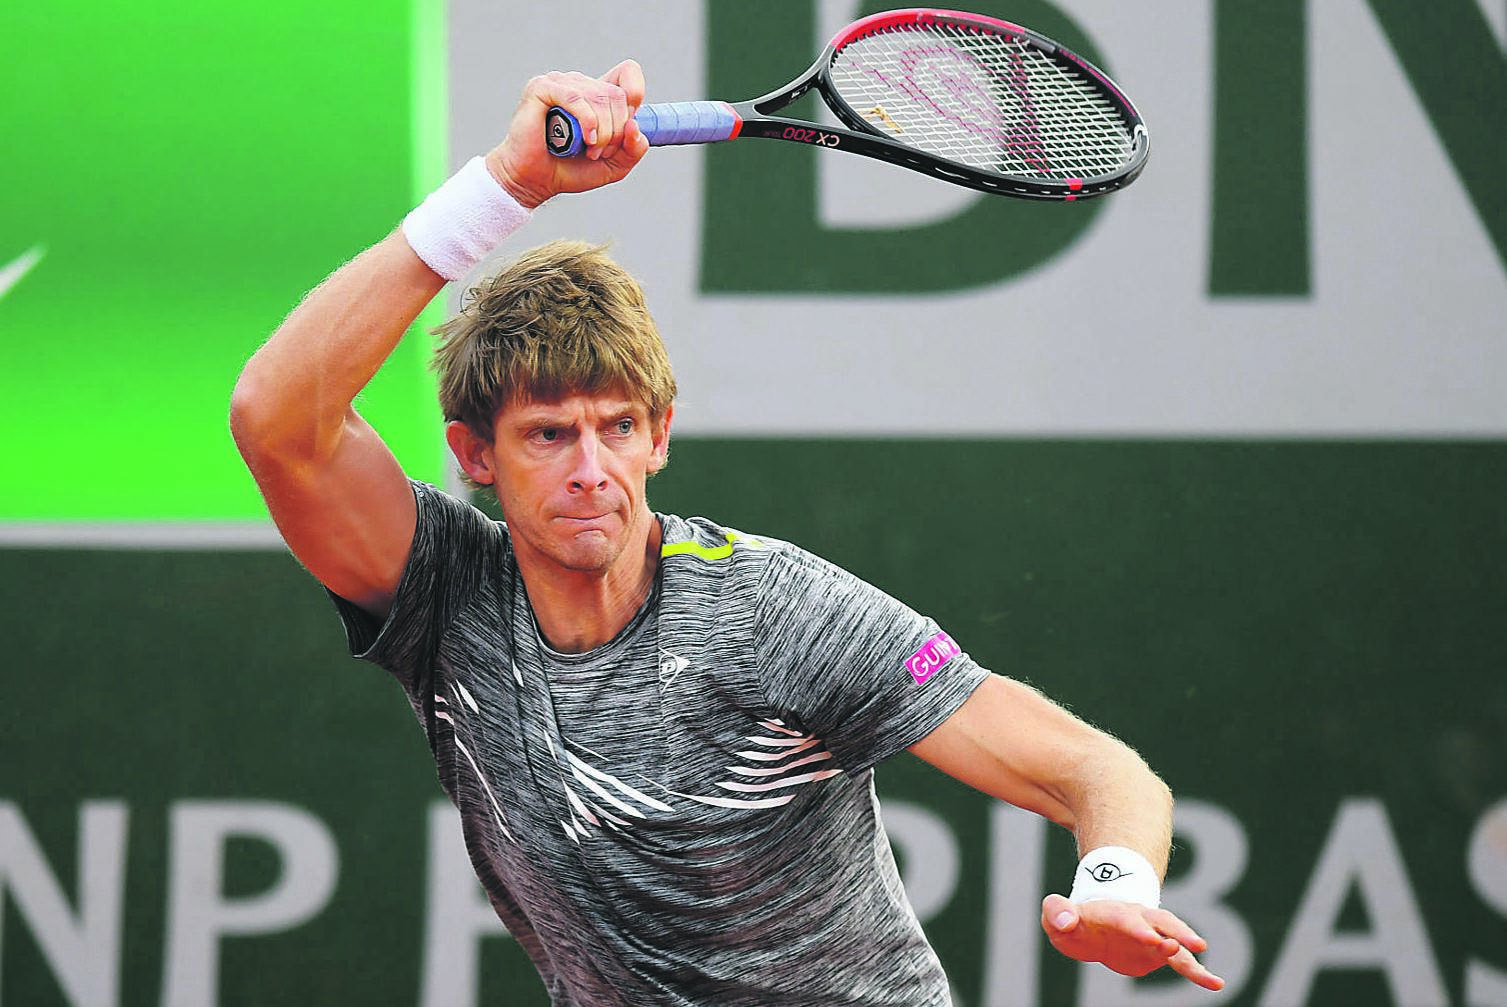 Kevin Anderson was sent packing from the French Open.